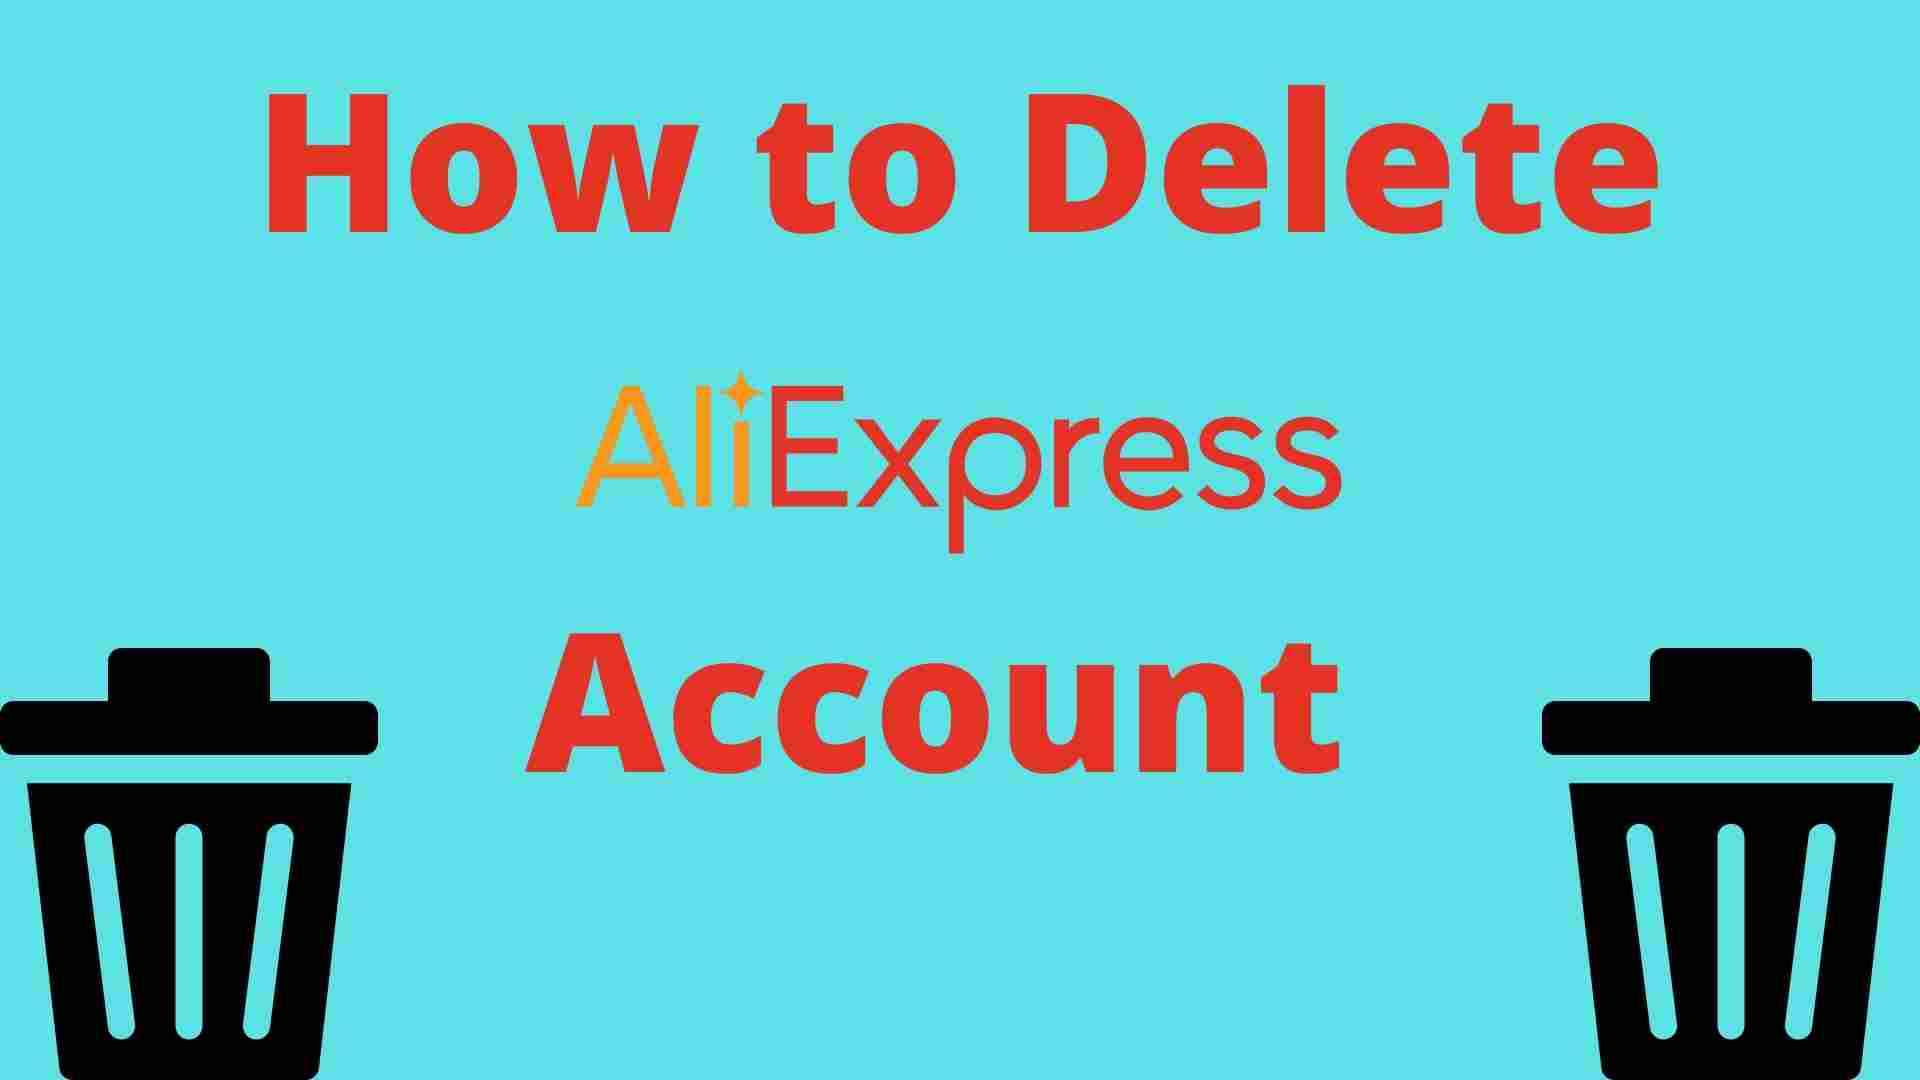 How to Delete Aliexpress Account